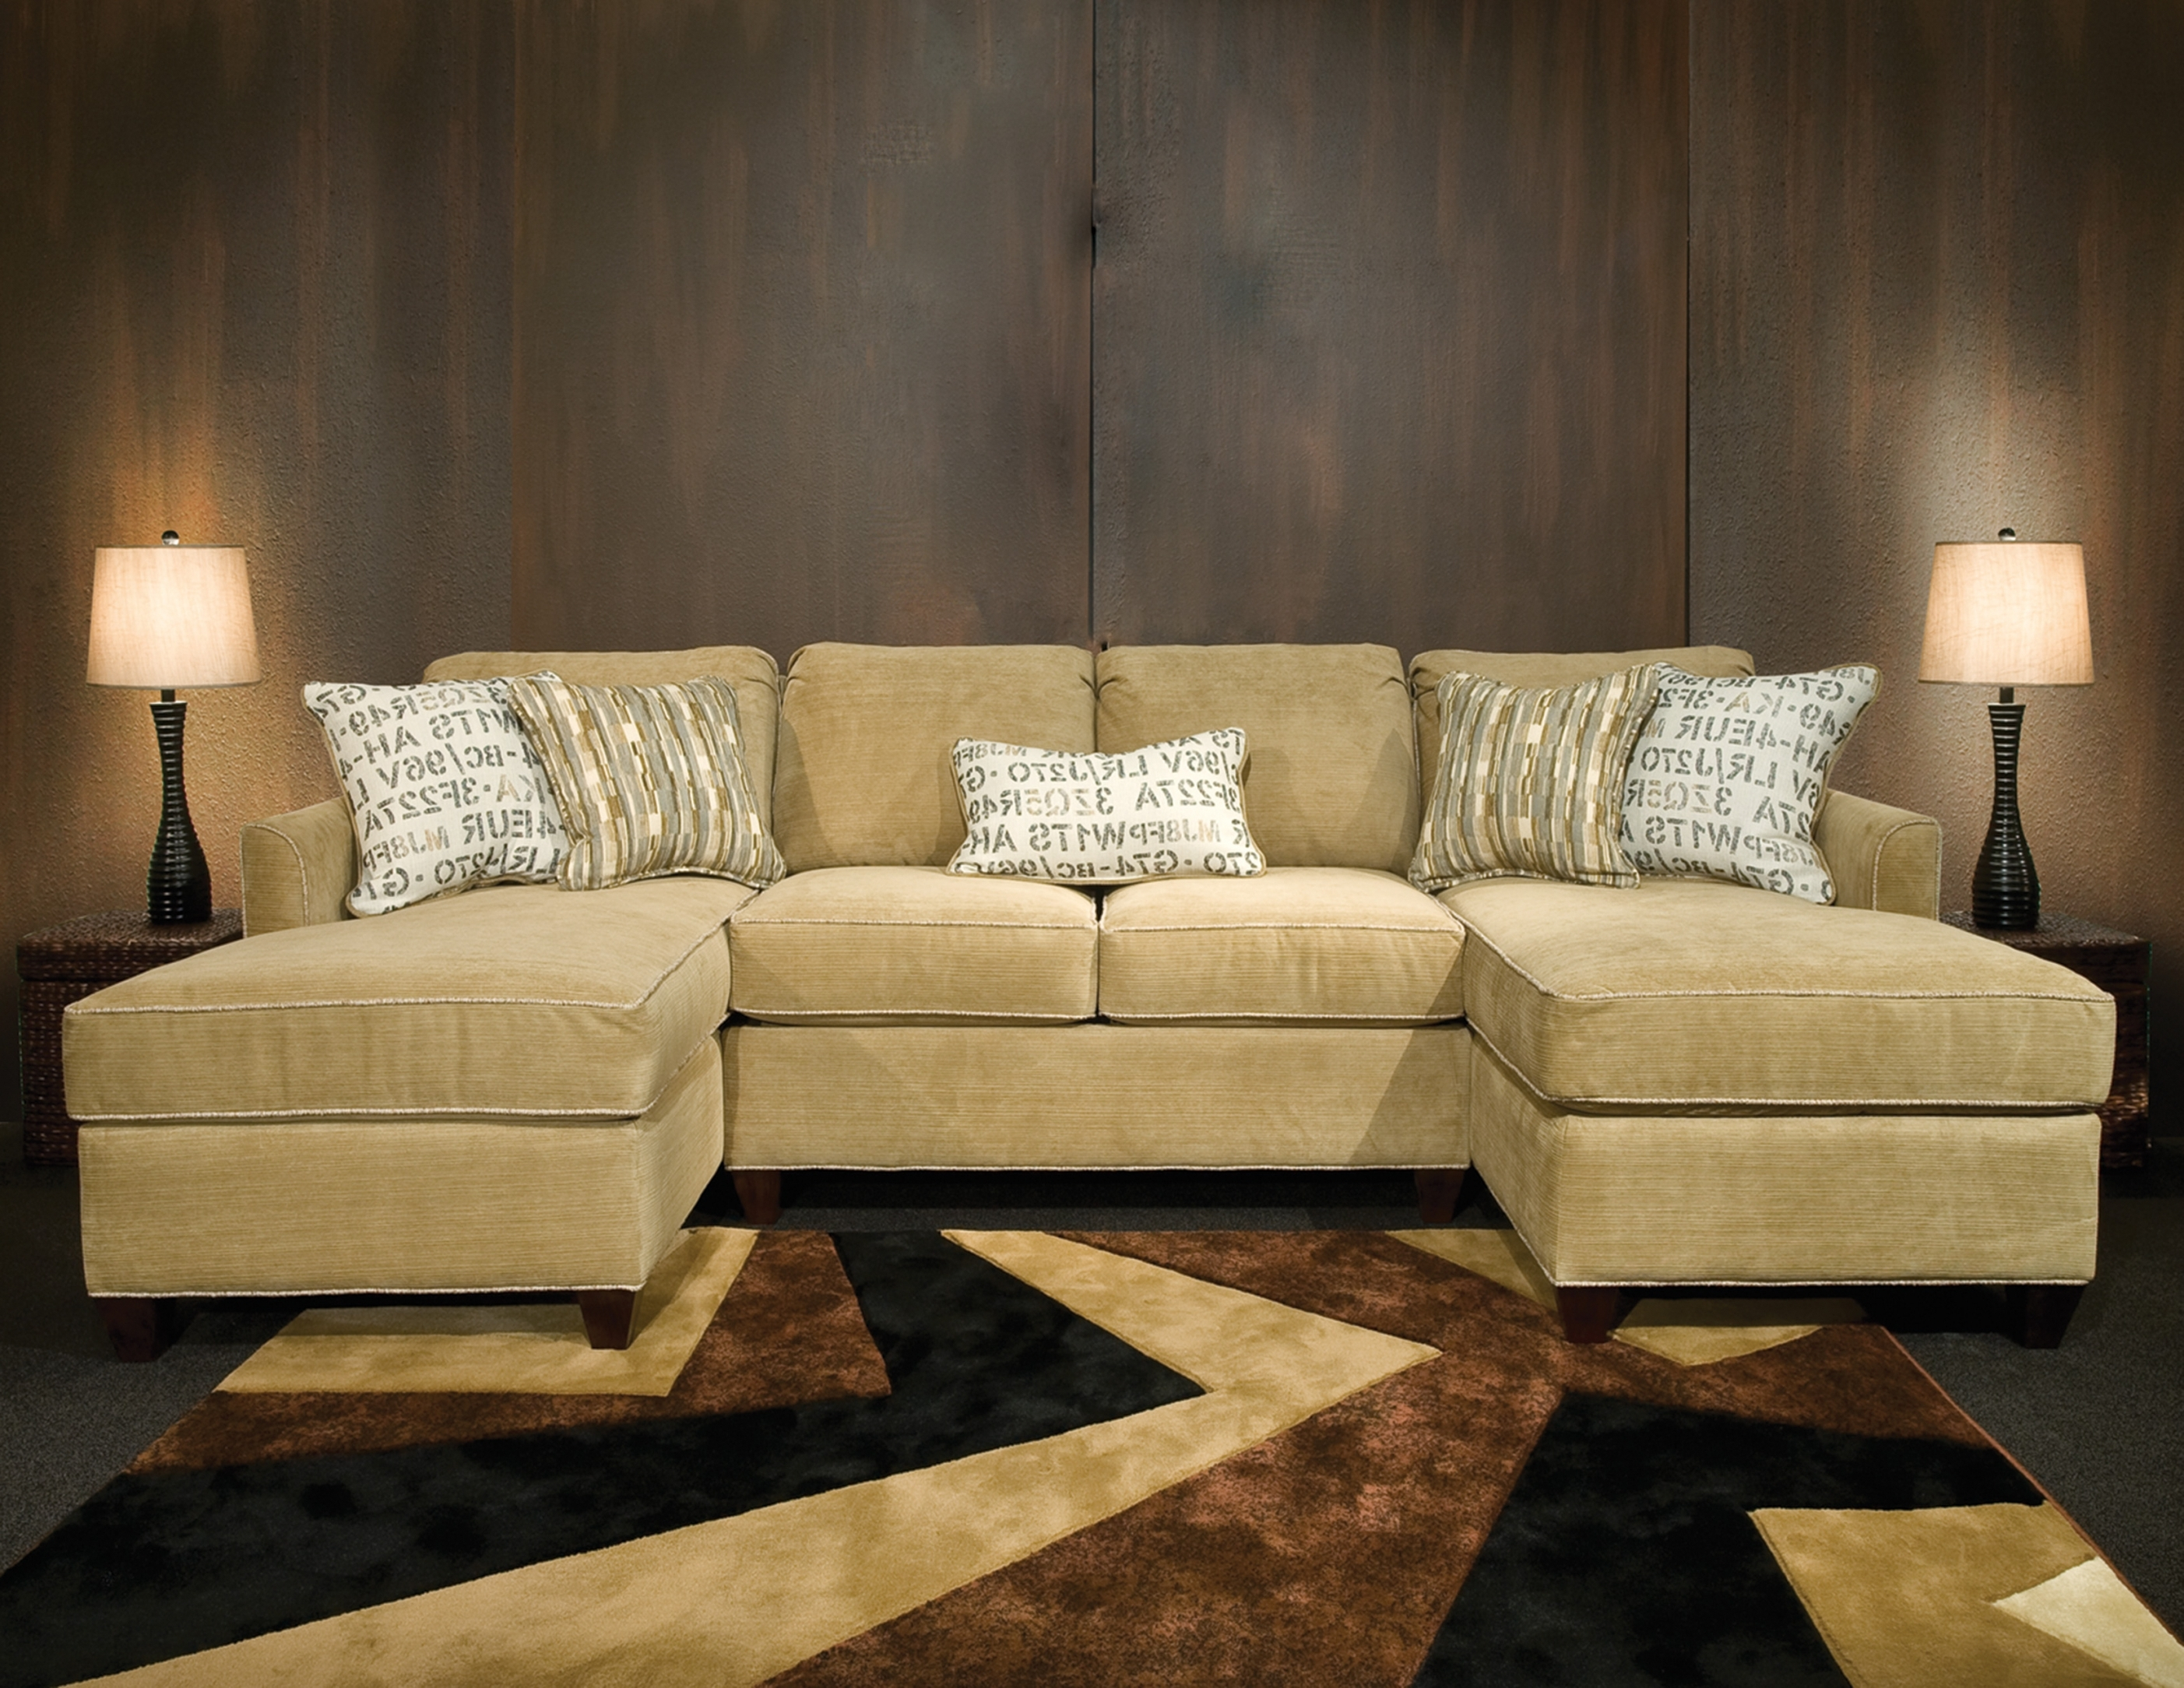 Amusing Double Chaise Sectional Sofa 22 On Black Fabric Sectional Within Current Dual Chaise Sectionals (View 1 of 15)